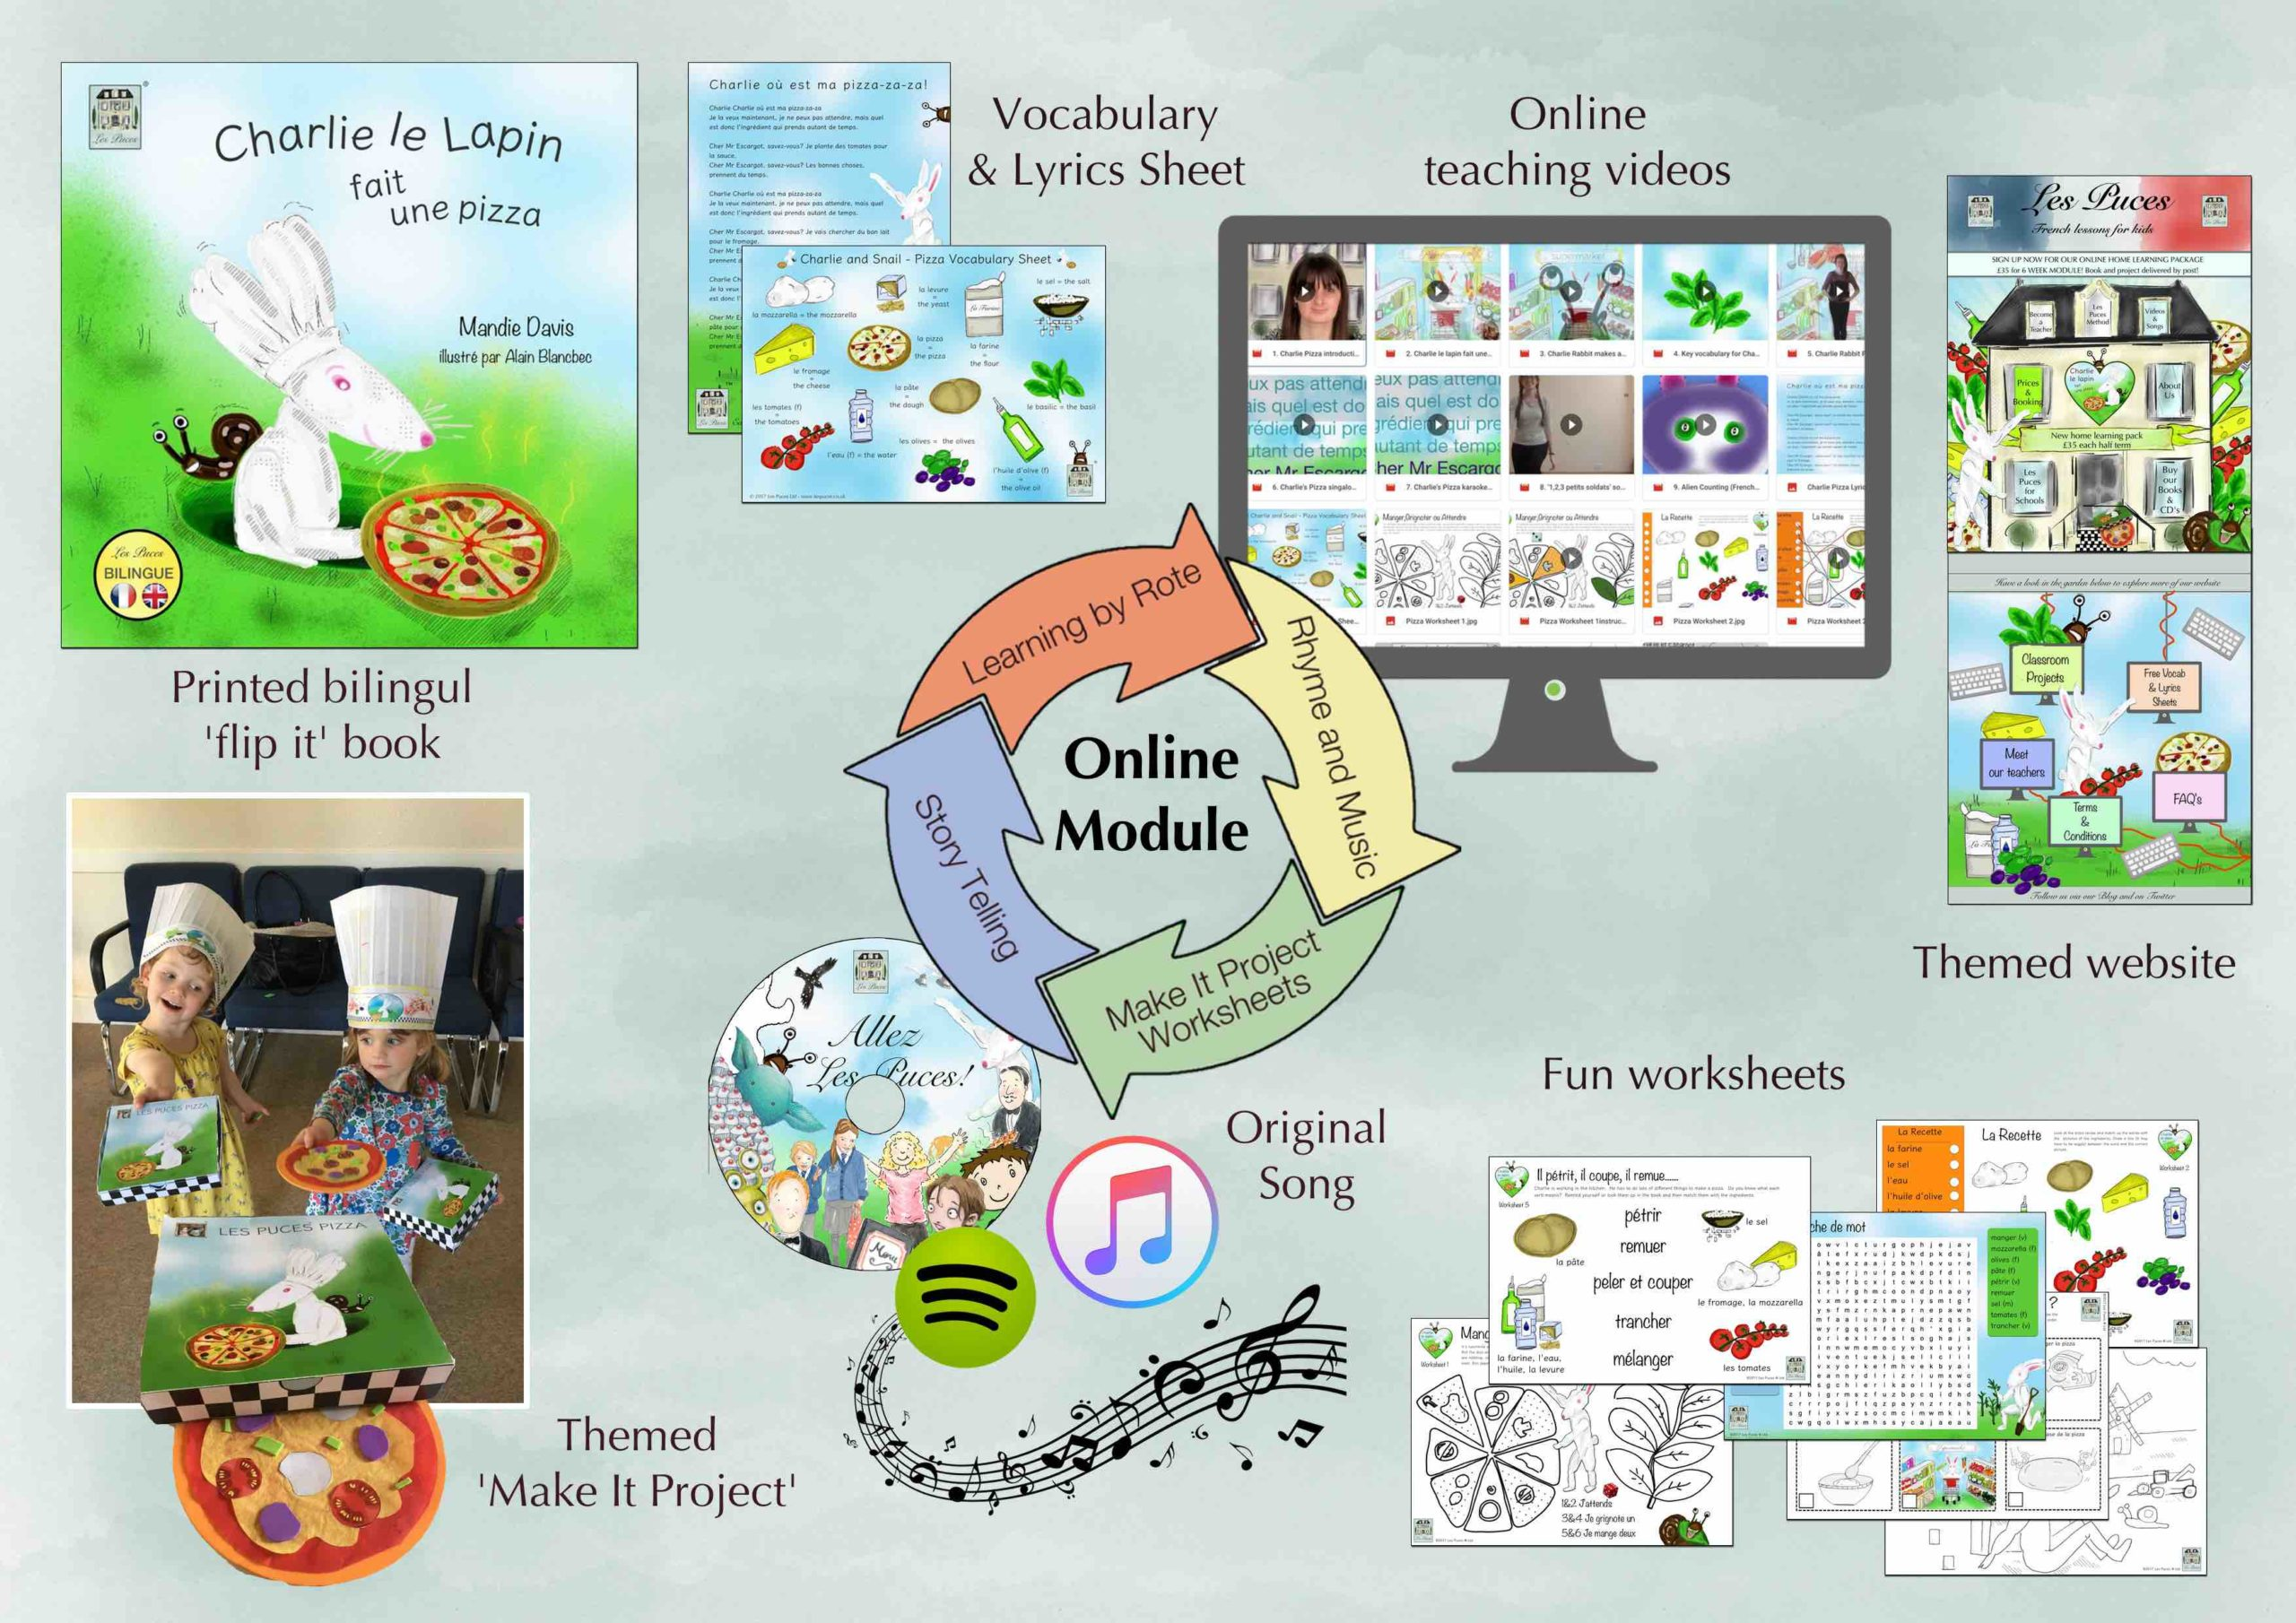 Les Puces French Online Learning